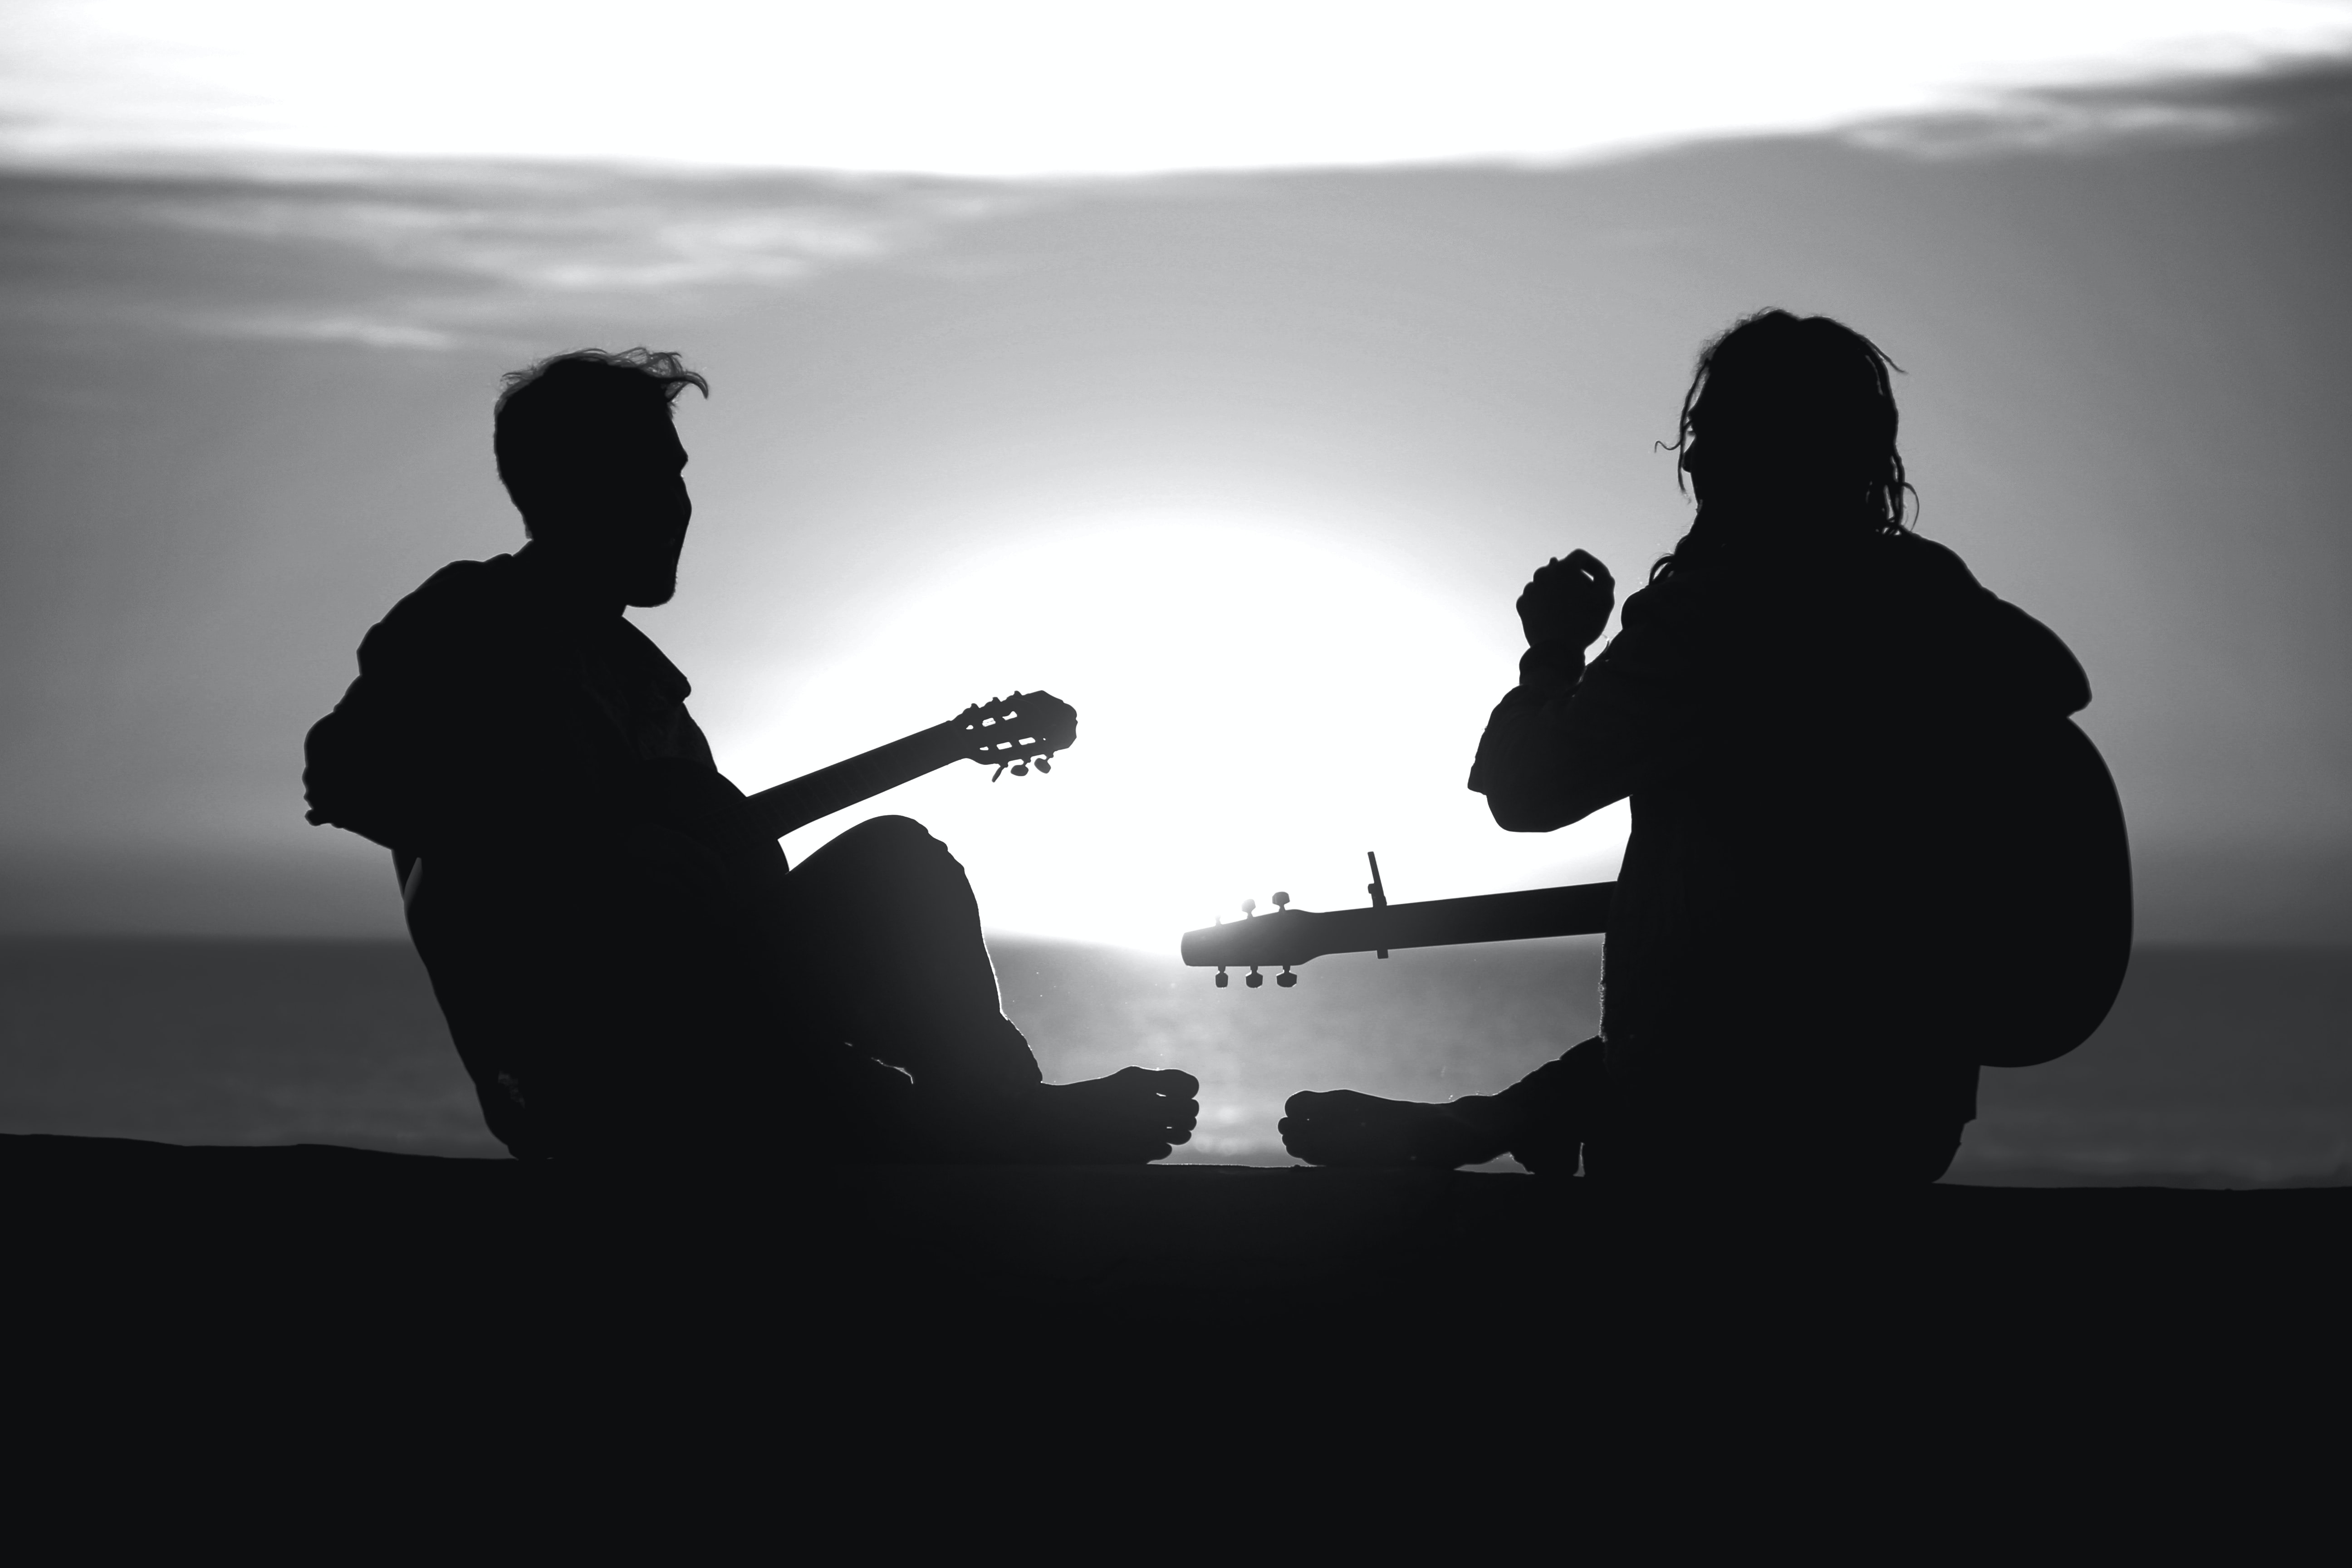 Two figures silhouetted against the sun, laughing with musical instruments